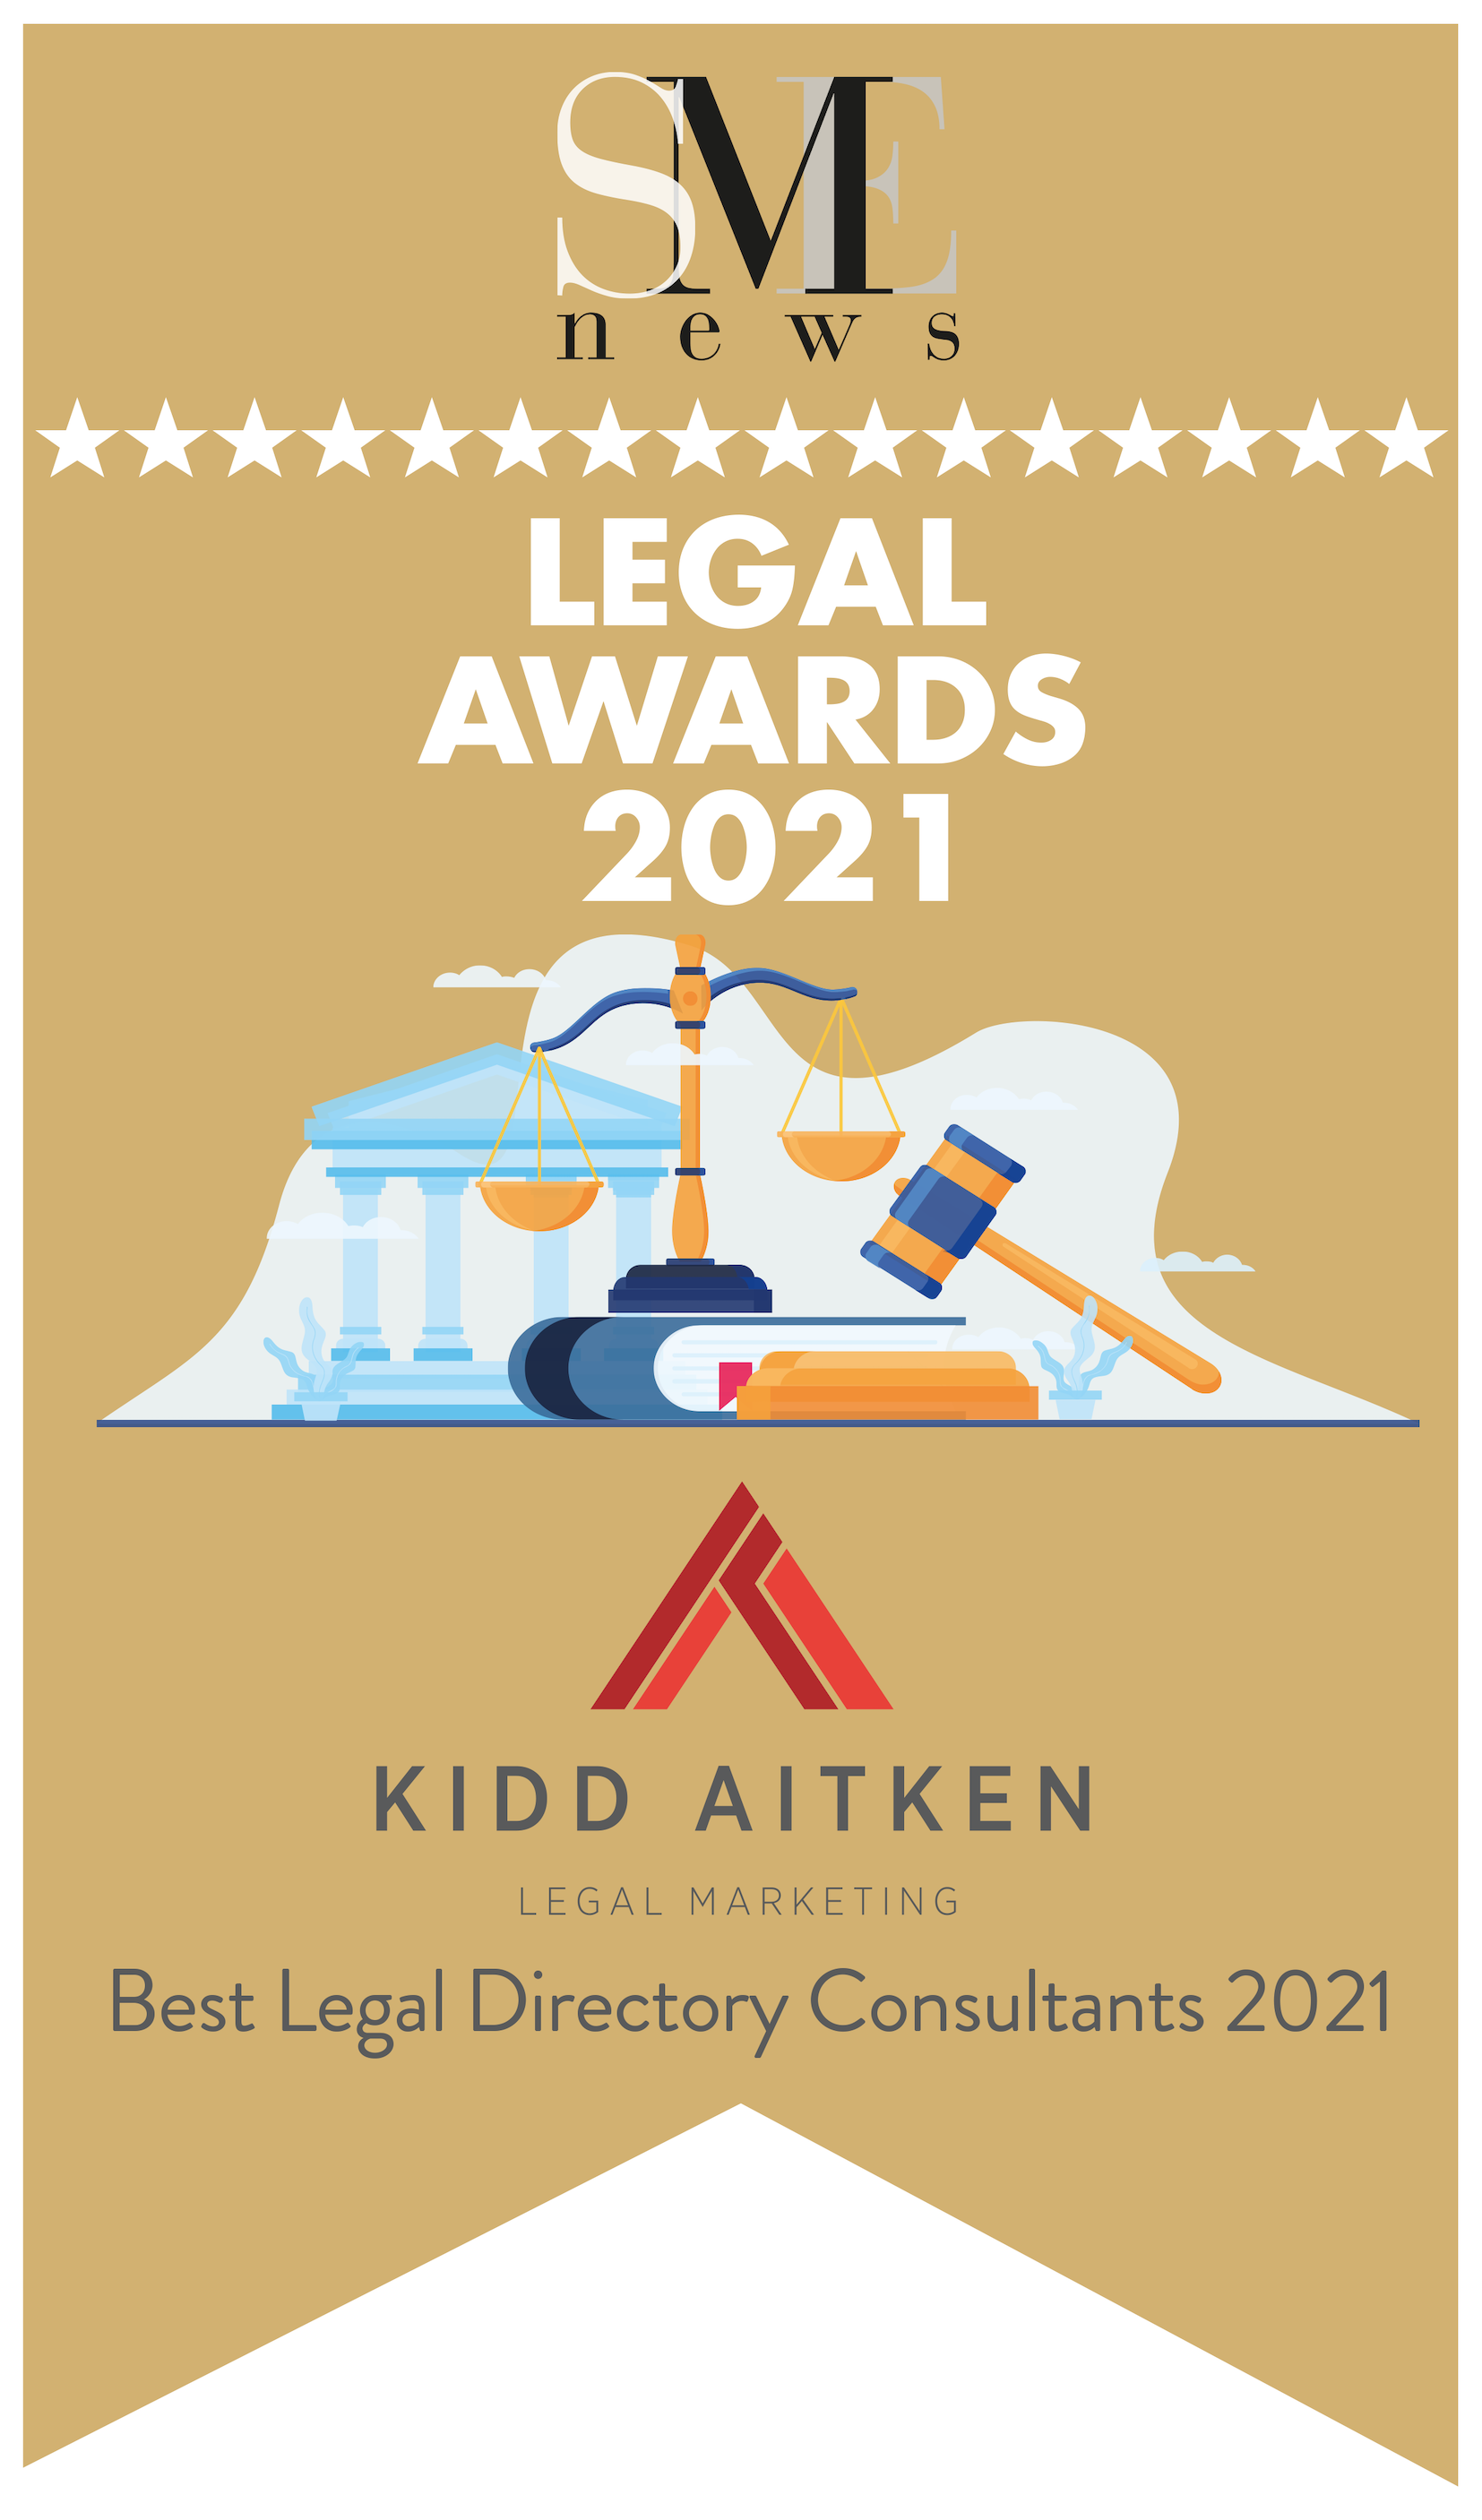 Kidd Aitken Best Legal Directory Consultants 2021